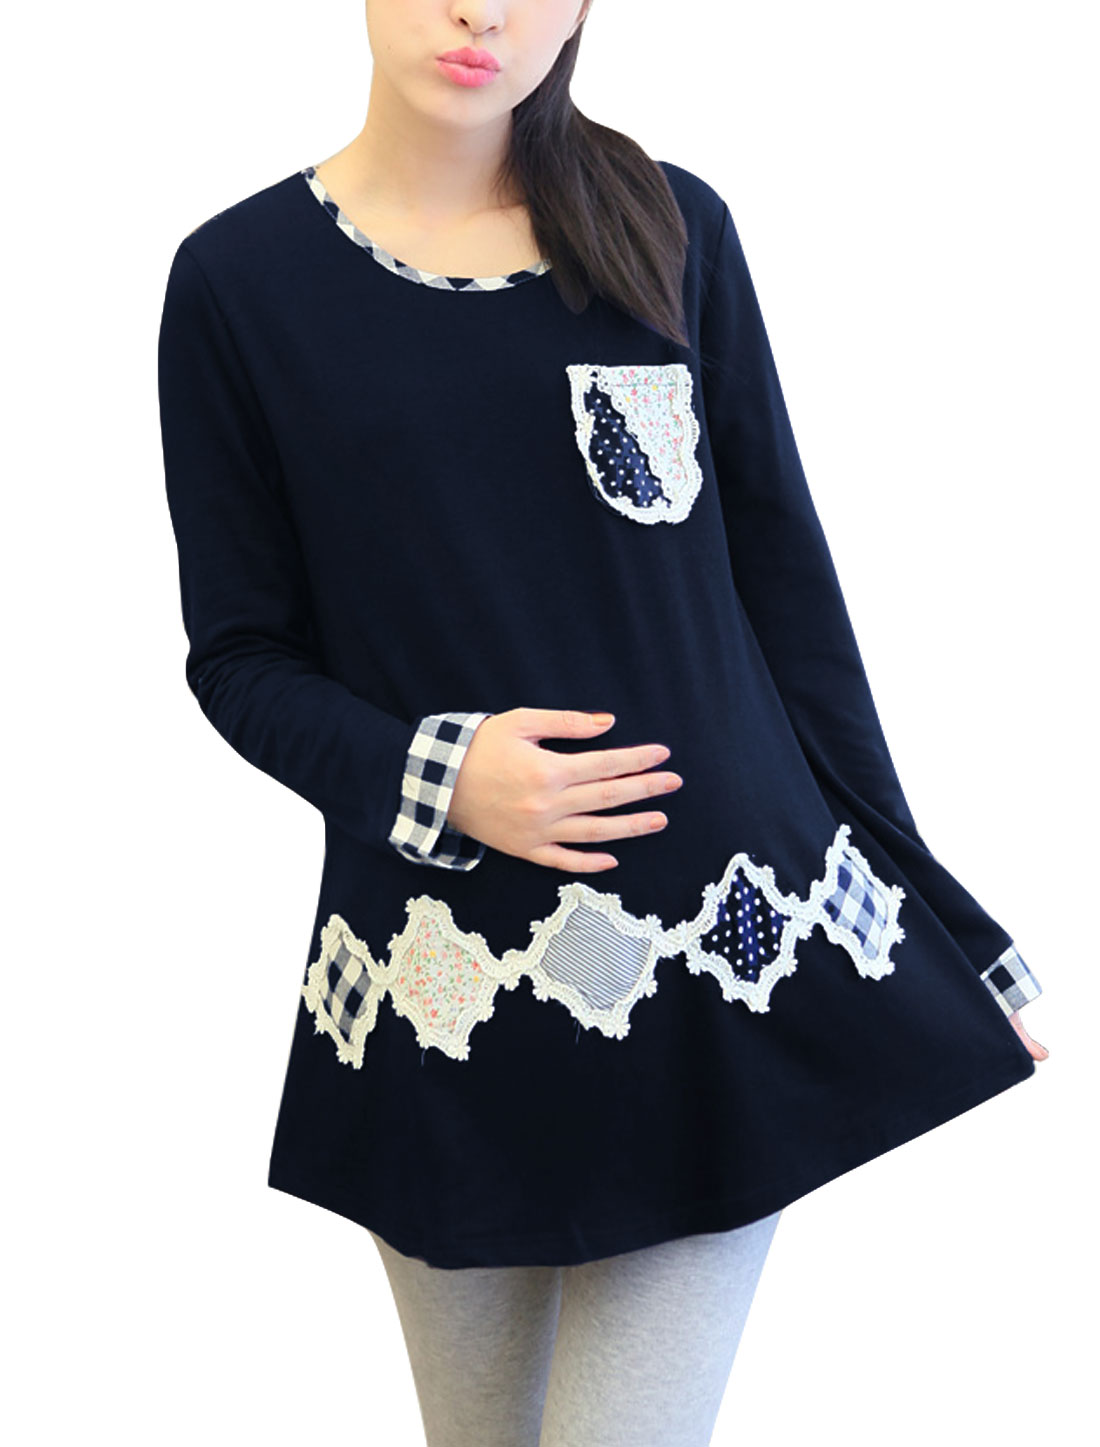 Maternity Pullover Applique Pattern Leisure Tee Shirt Navy Blue M